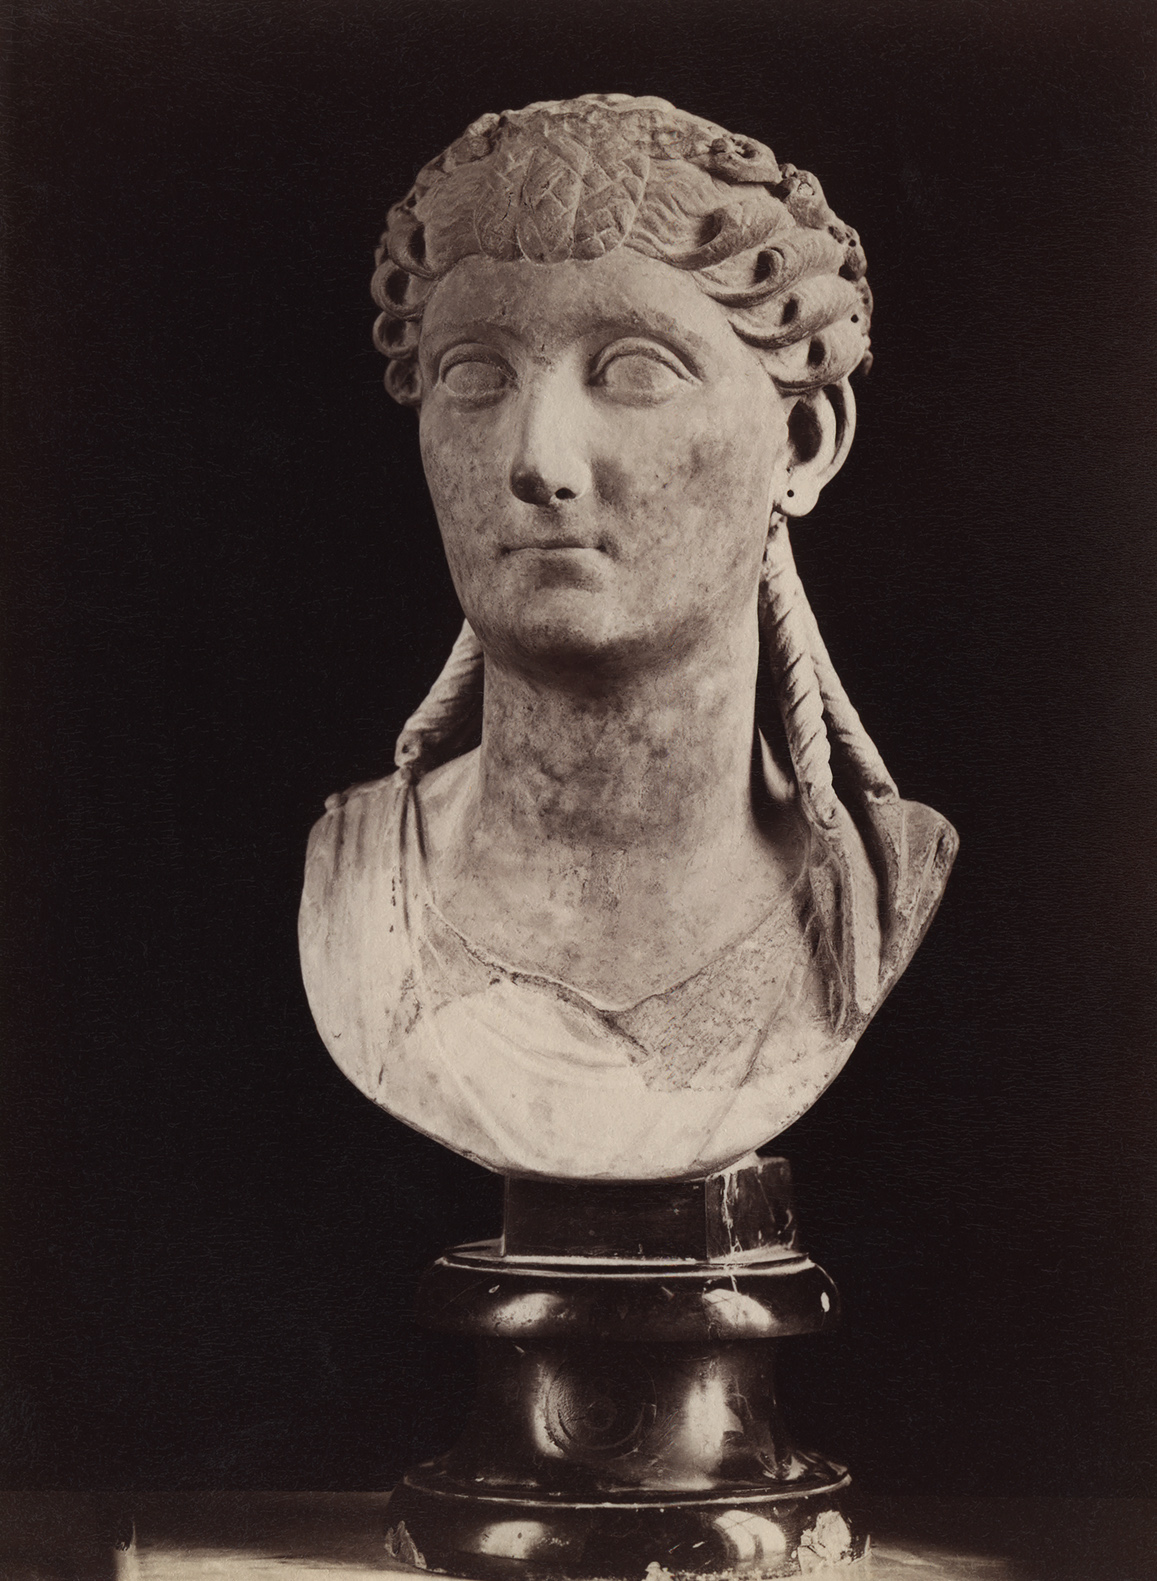 Antonia the Younger, the wife of Drusus the Elder. Marble. 1st century. Rome, Capitoline Museums, Palazzo Nuovo, Hall of the Emperors